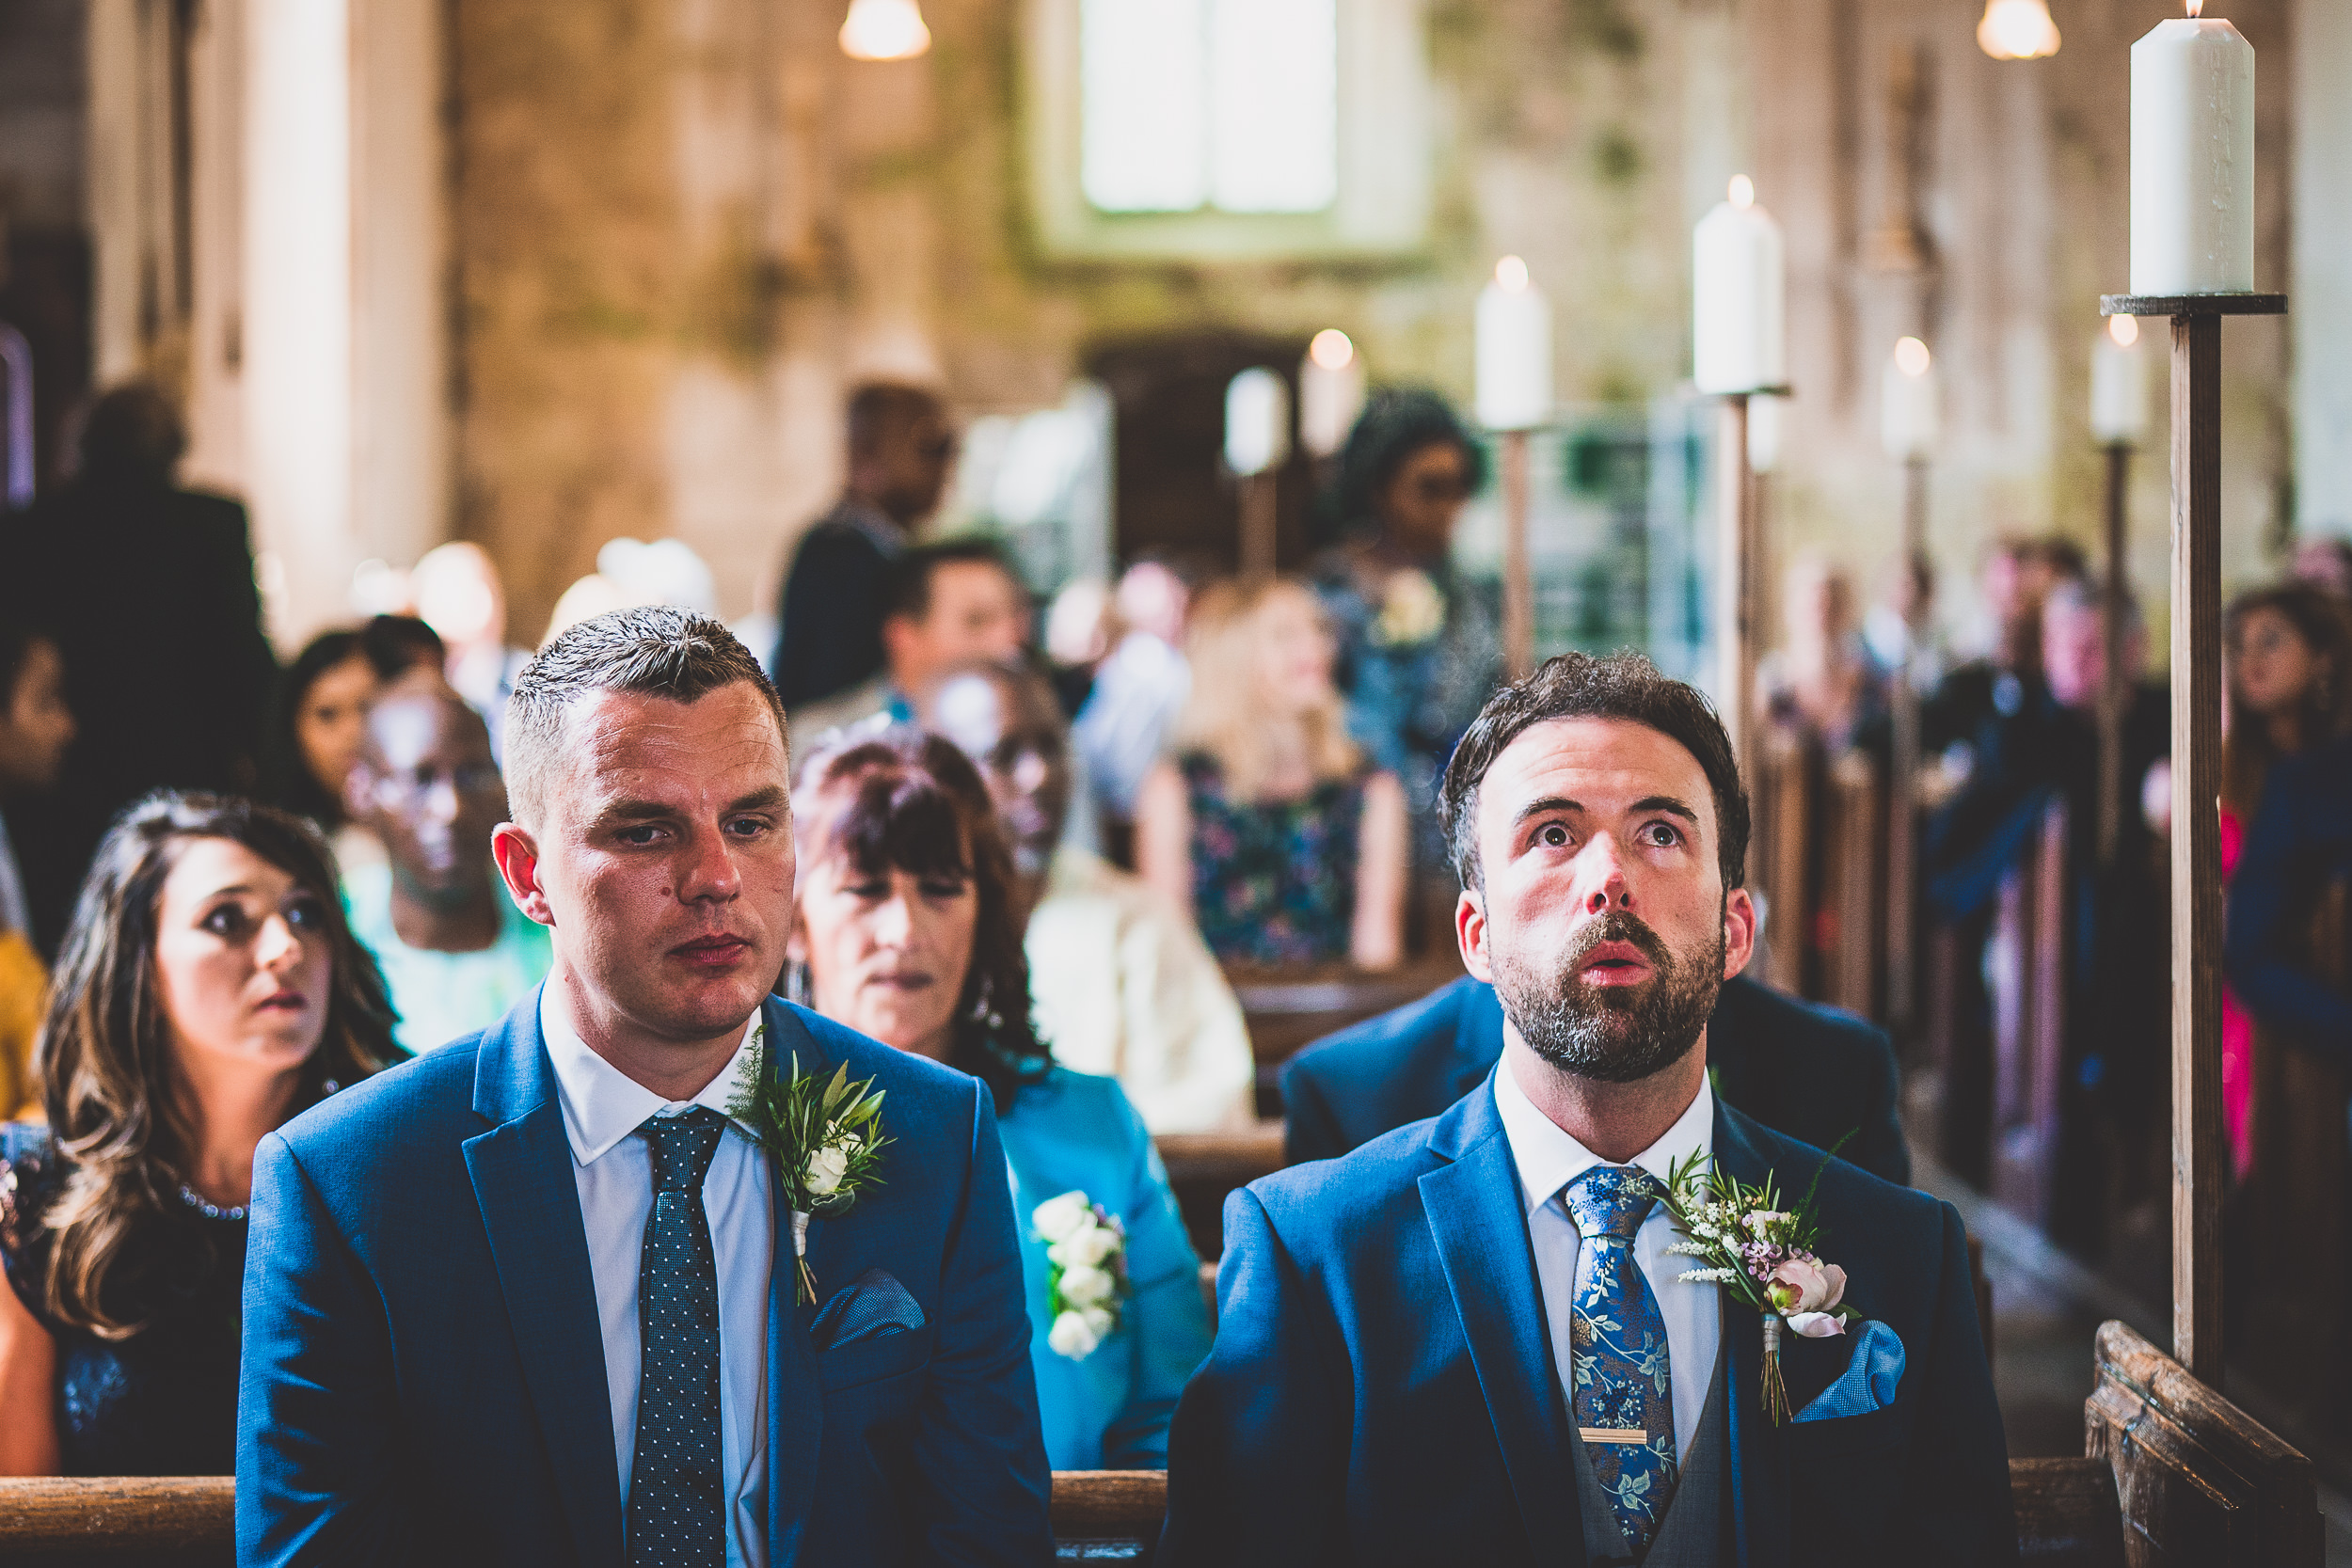 Lulworth Castle Wedding Photography | Amina & David Amina David ss 021